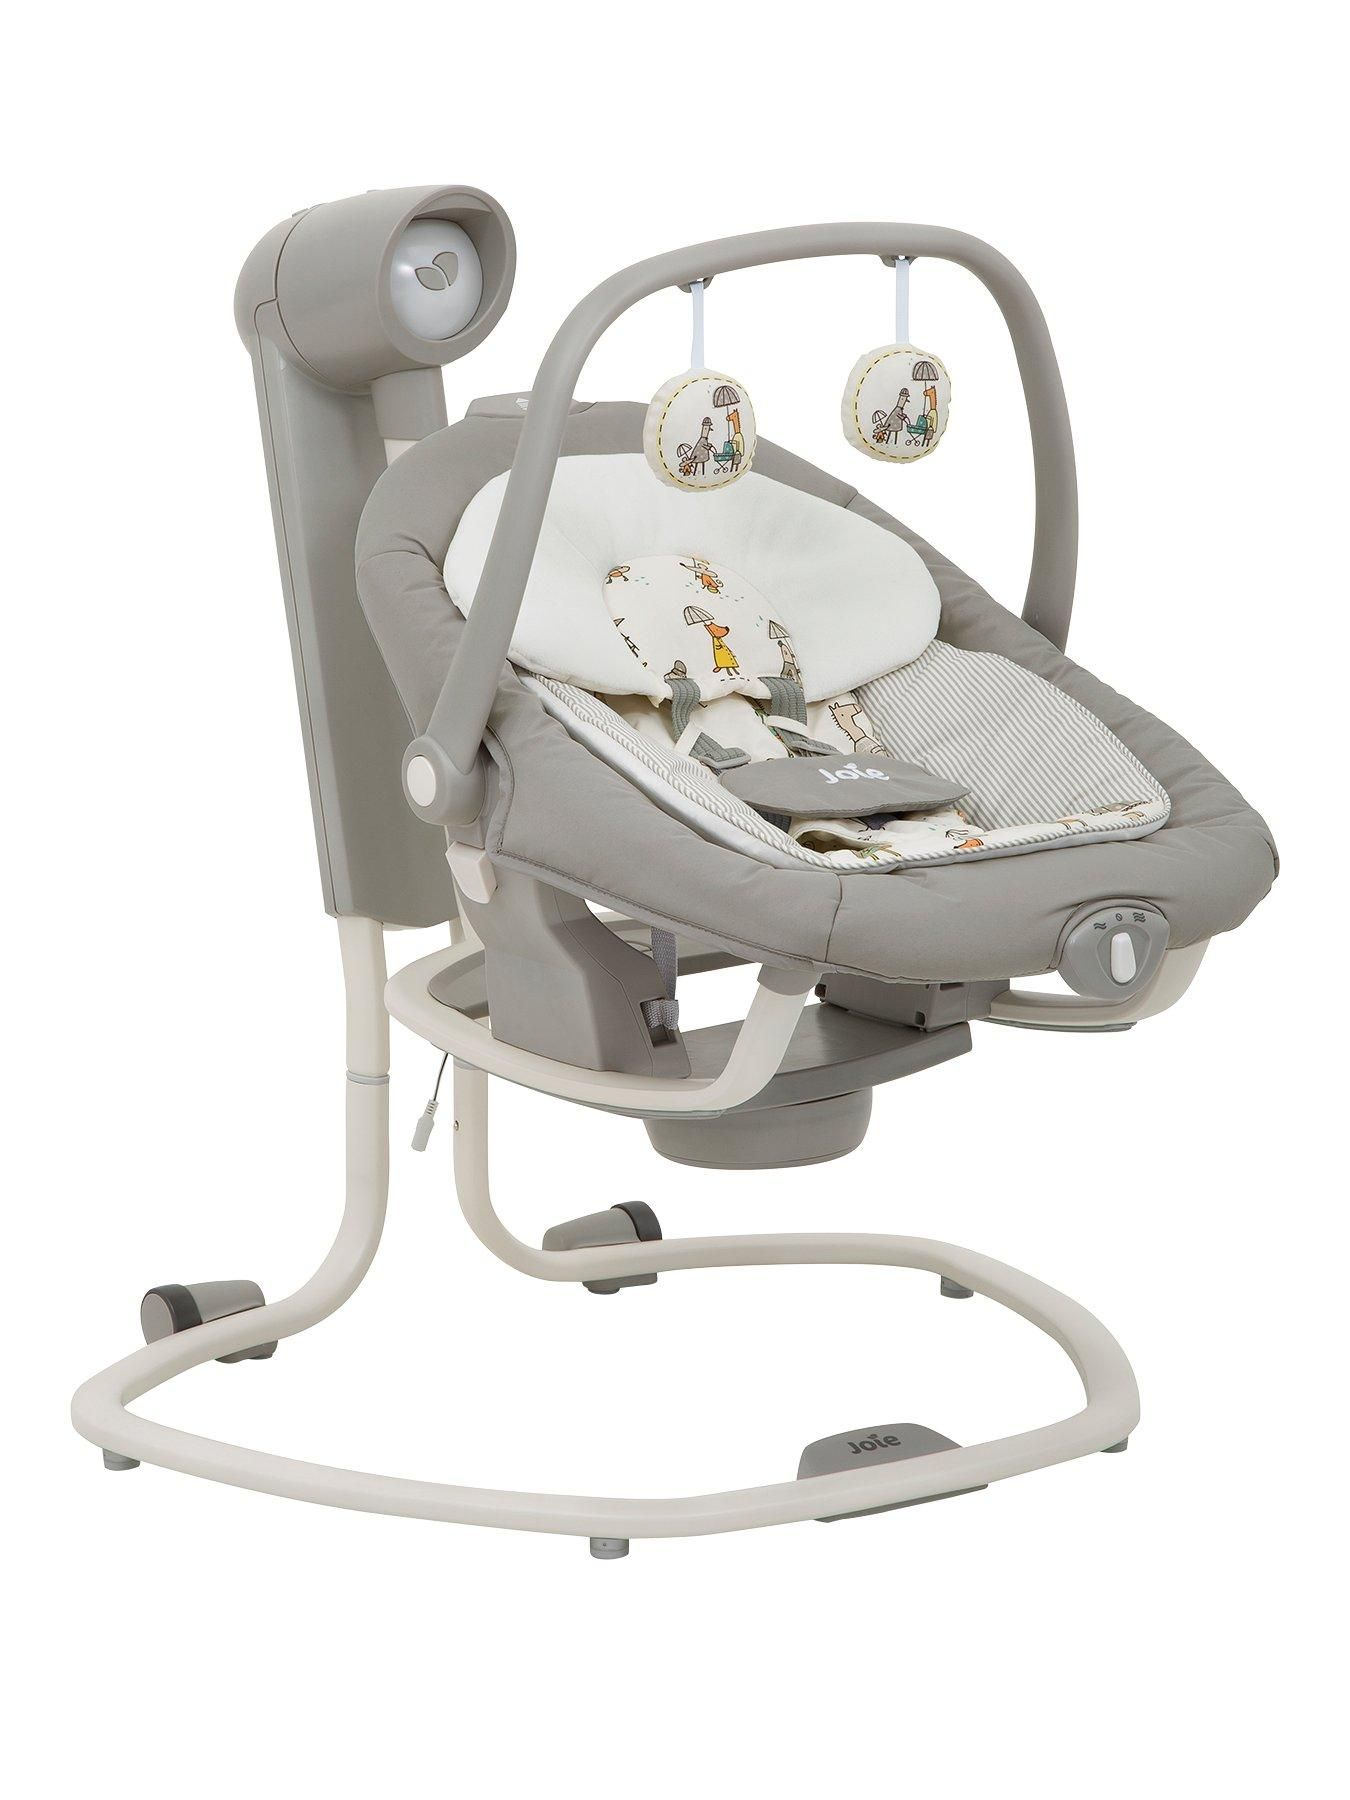 Joie Baby Swing Rocker Joie Serina 2 In 1 Swing In The Rain In One Colour